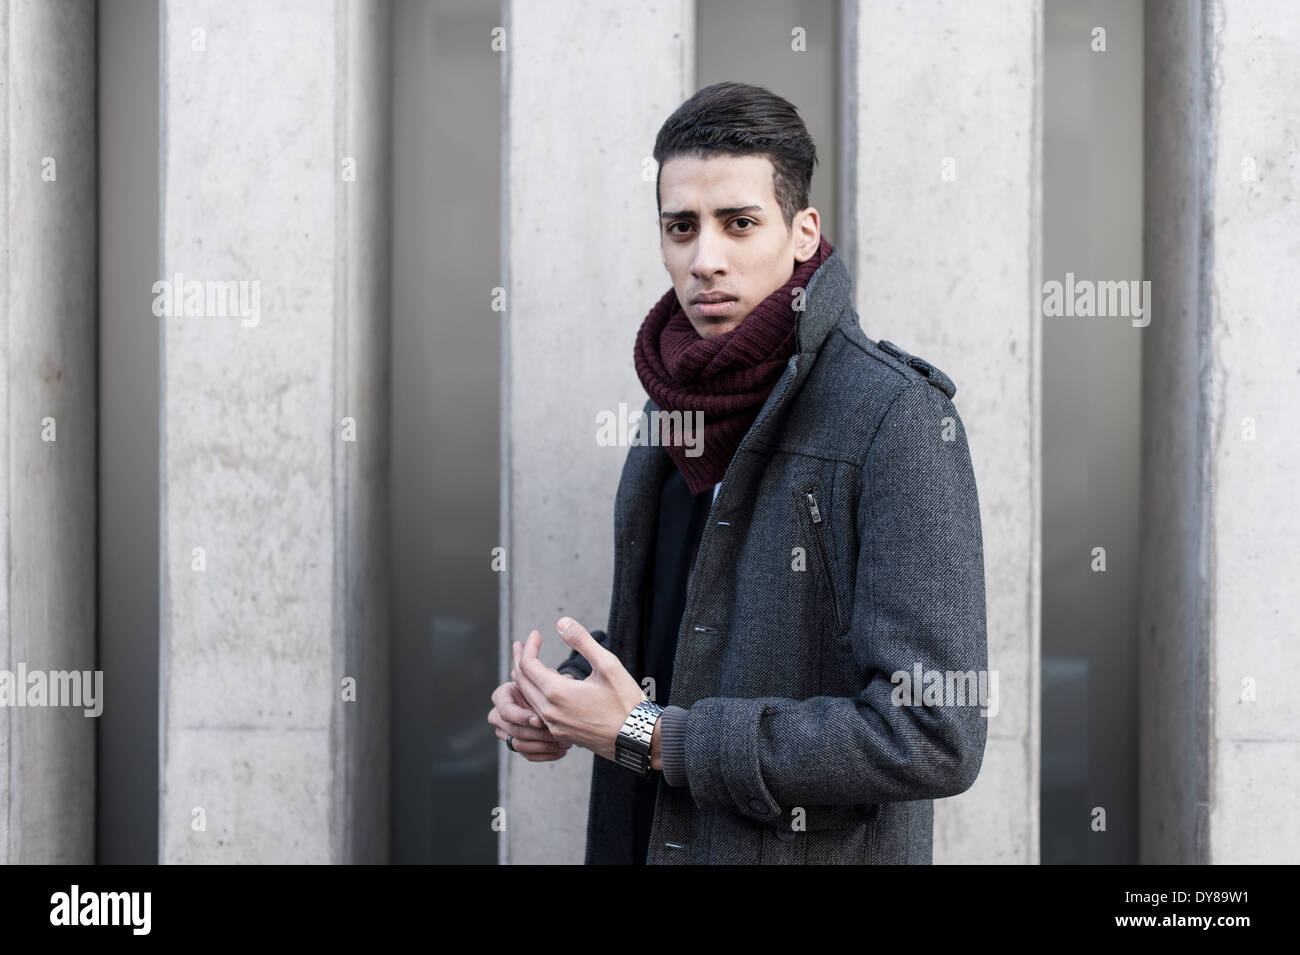 Young man, portrait - Stock Image